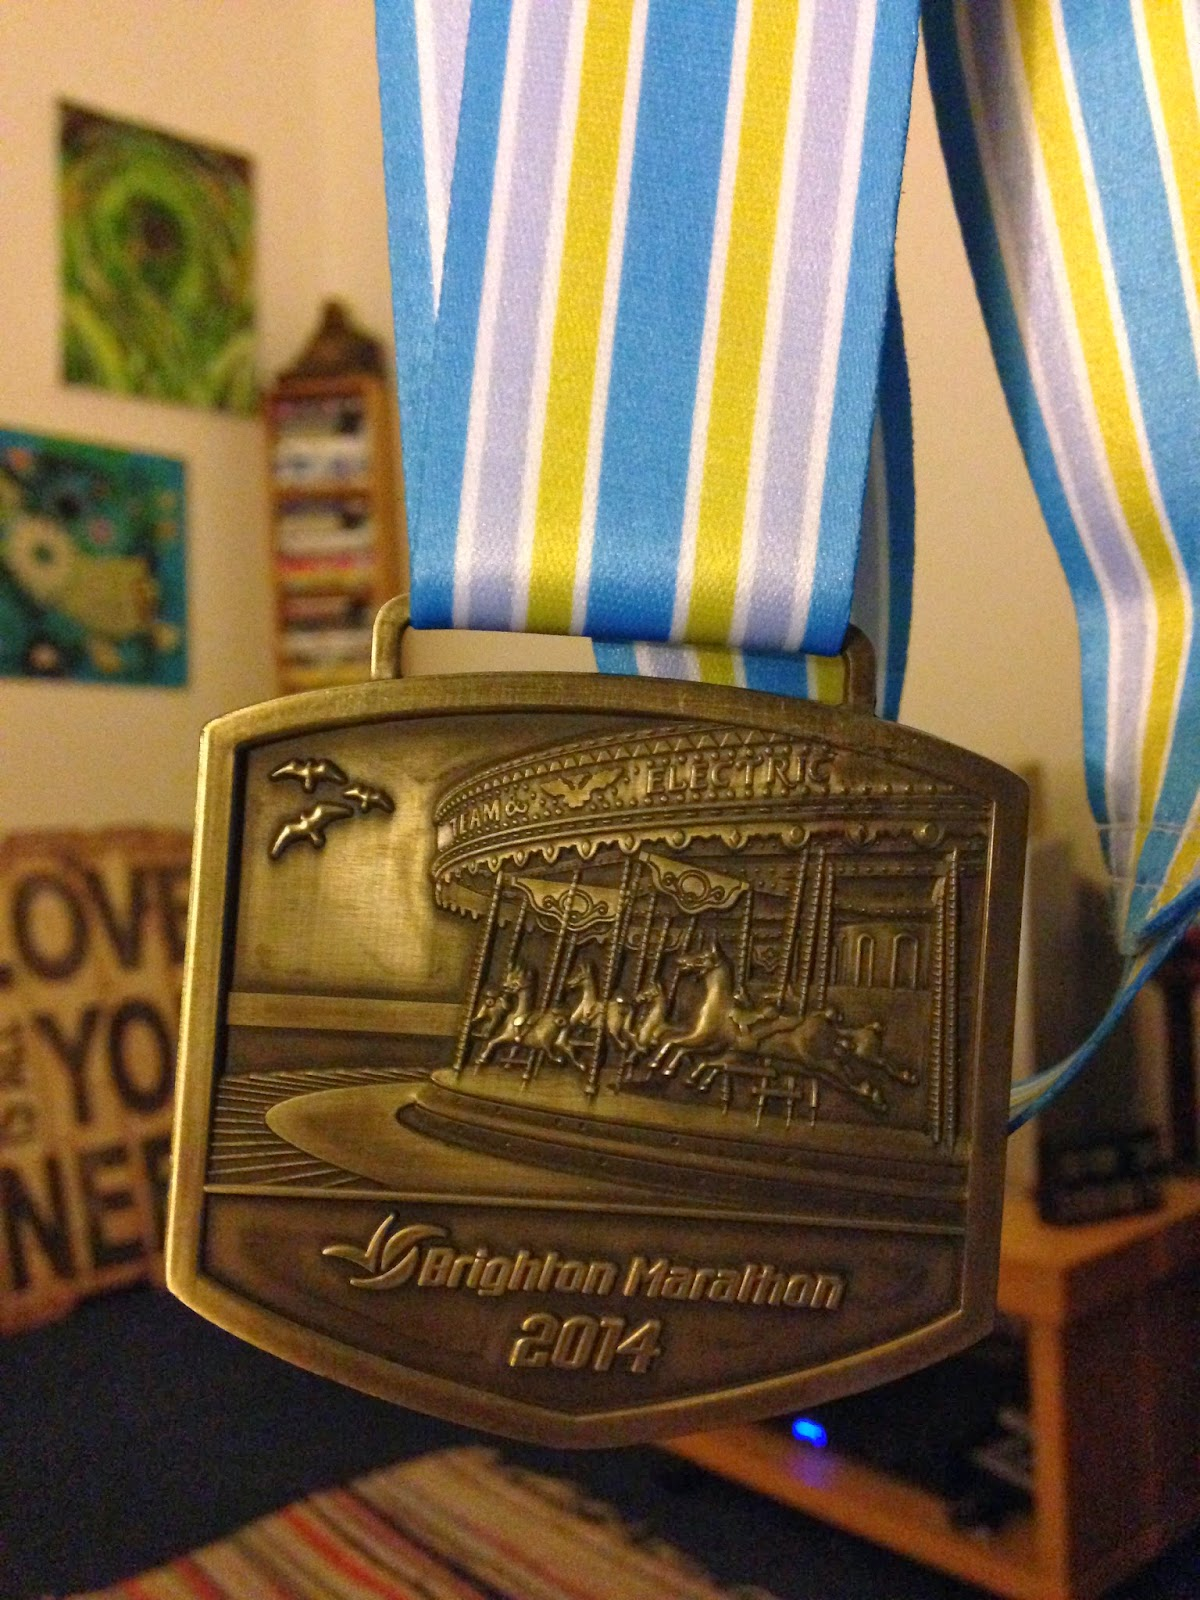 Brighton Marathon 2014 finishers medal